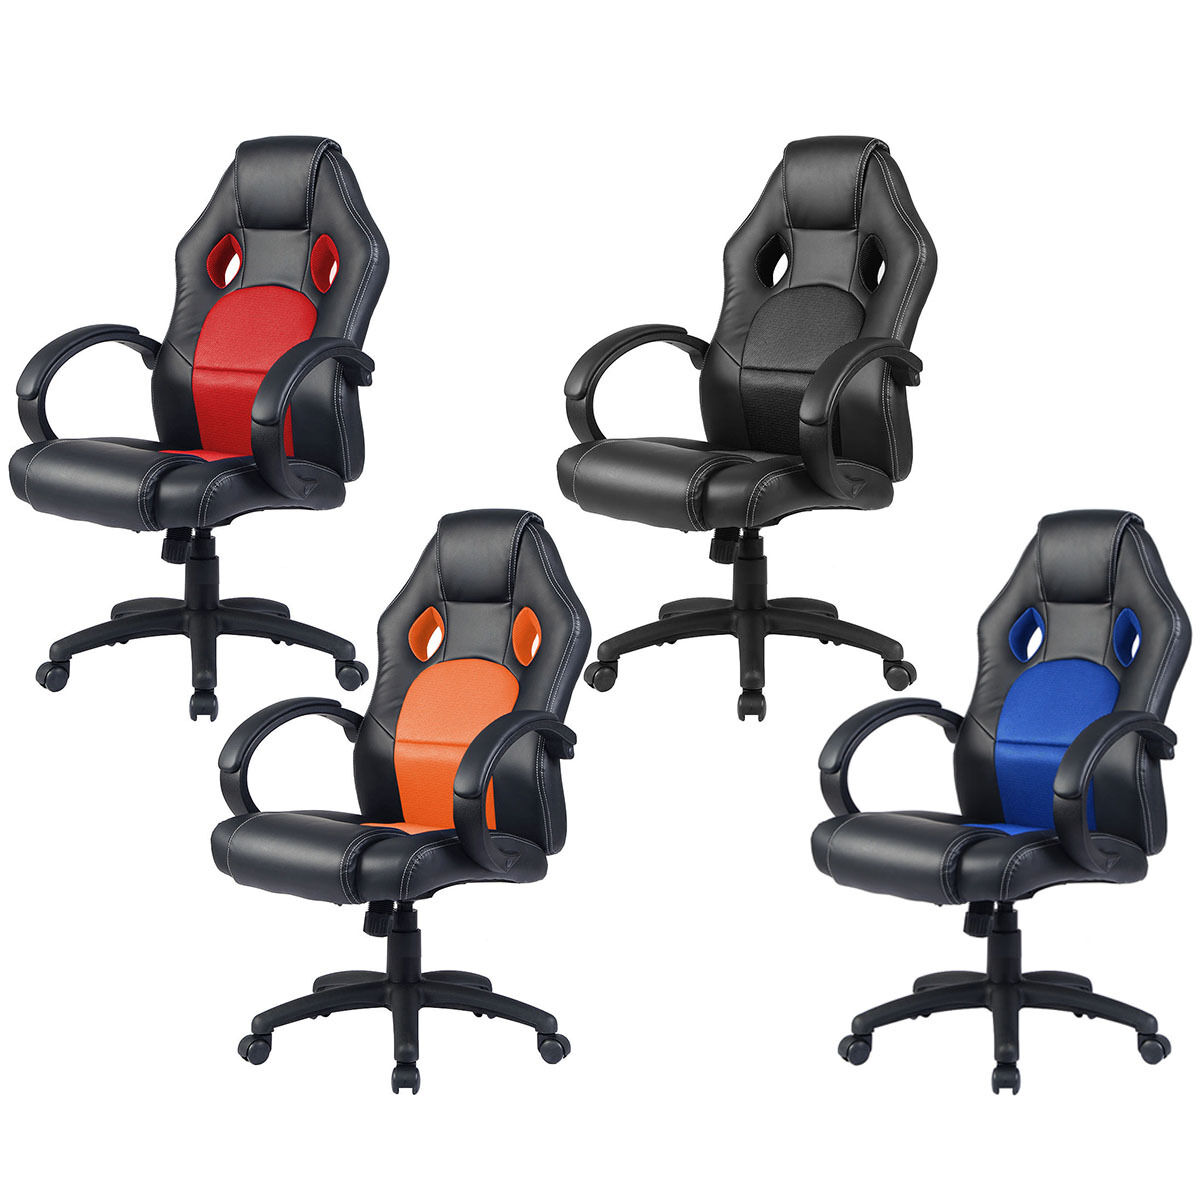 racing office chairs chair cover hire dunstable sports car seat gaming armchair